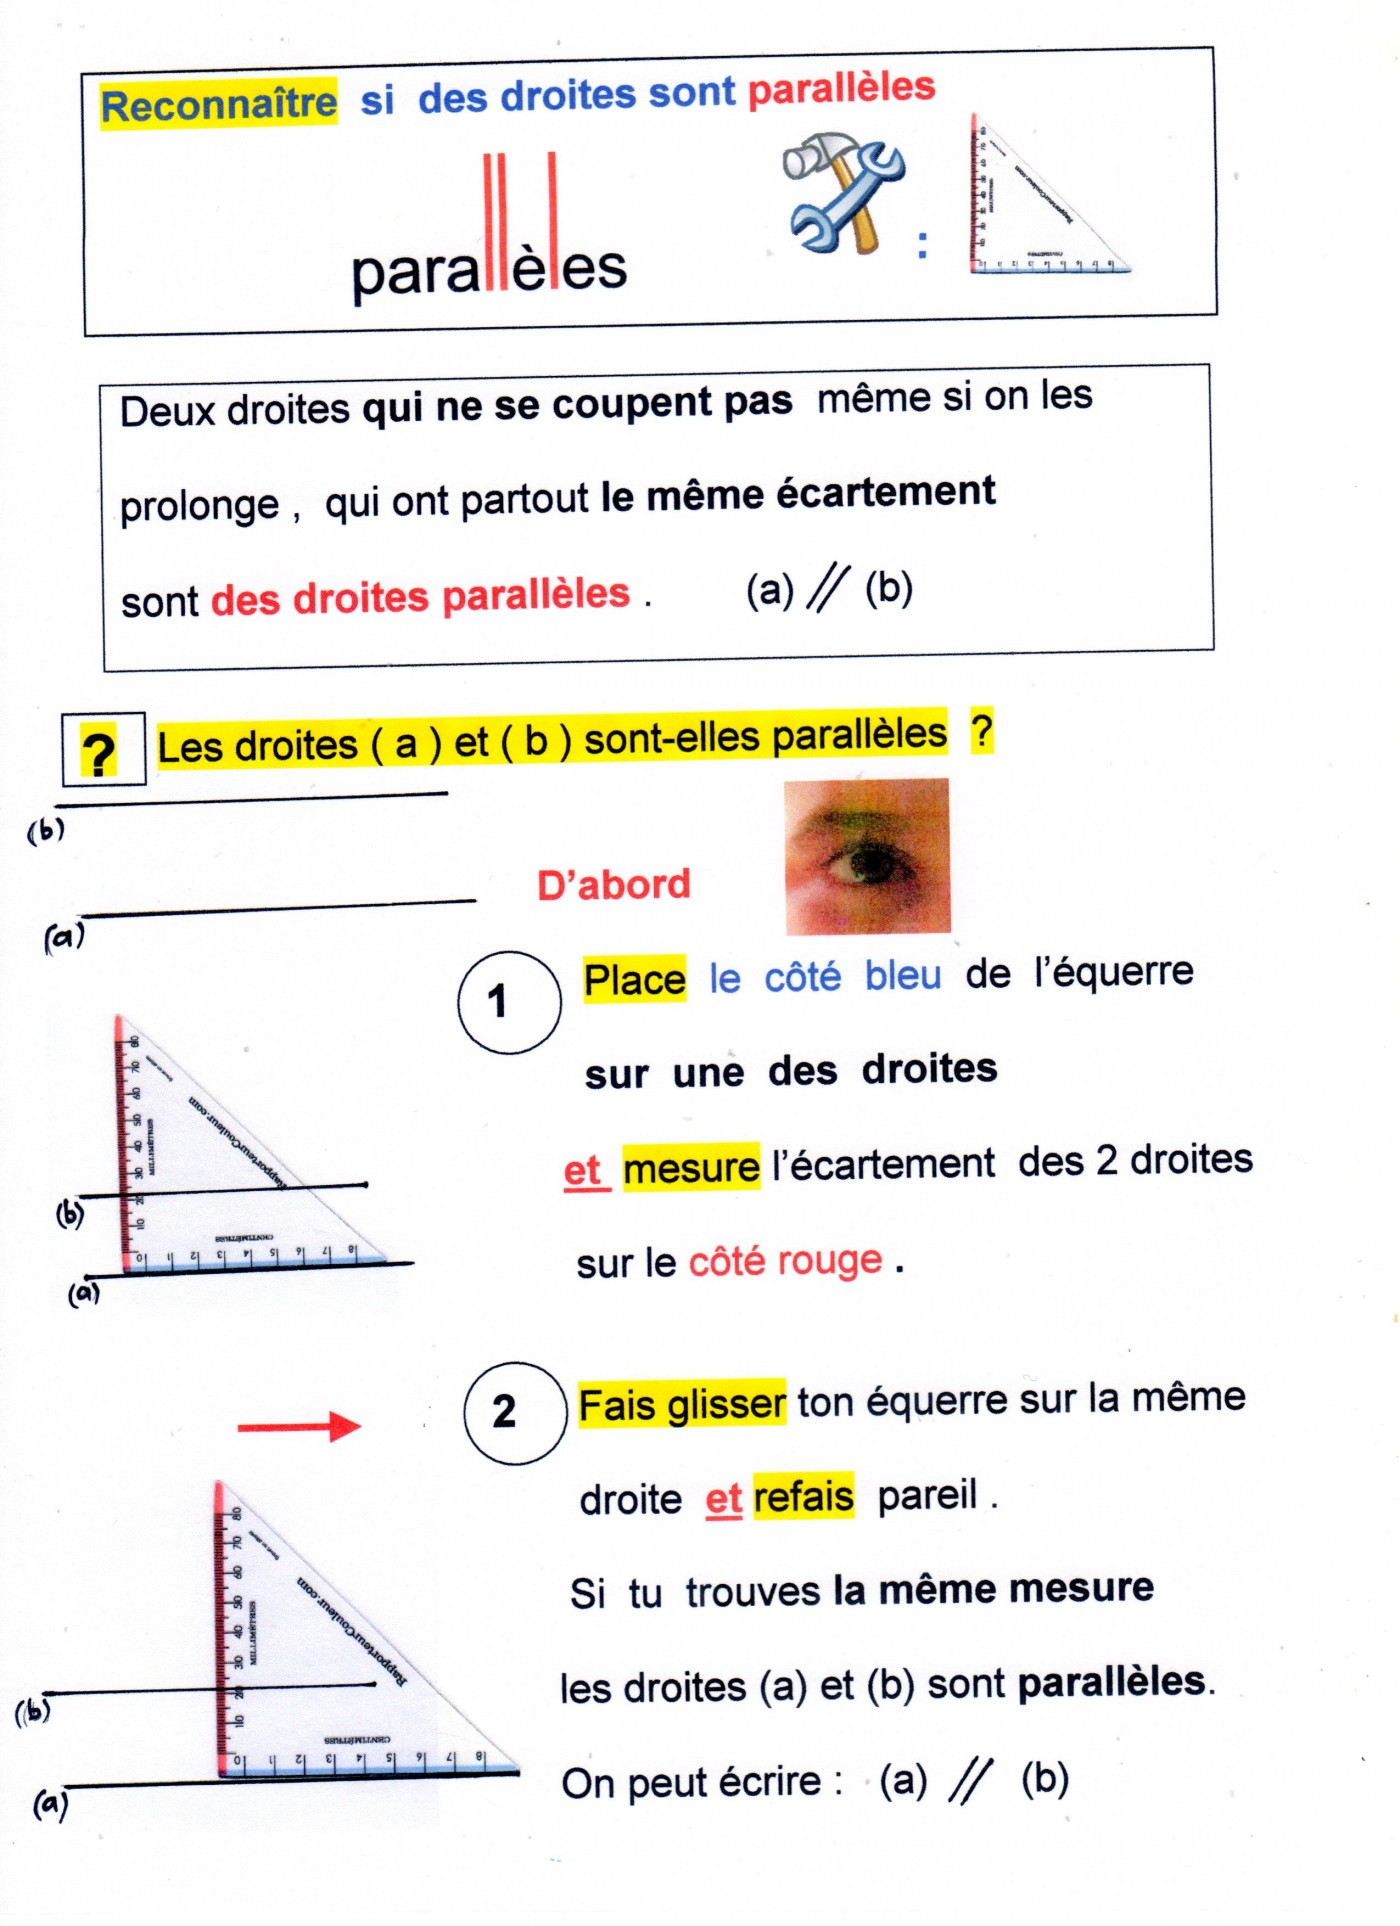 017 Essayer Essay Example Impressive De Or A Conjugation Imperative Ne Pas Rire 1400